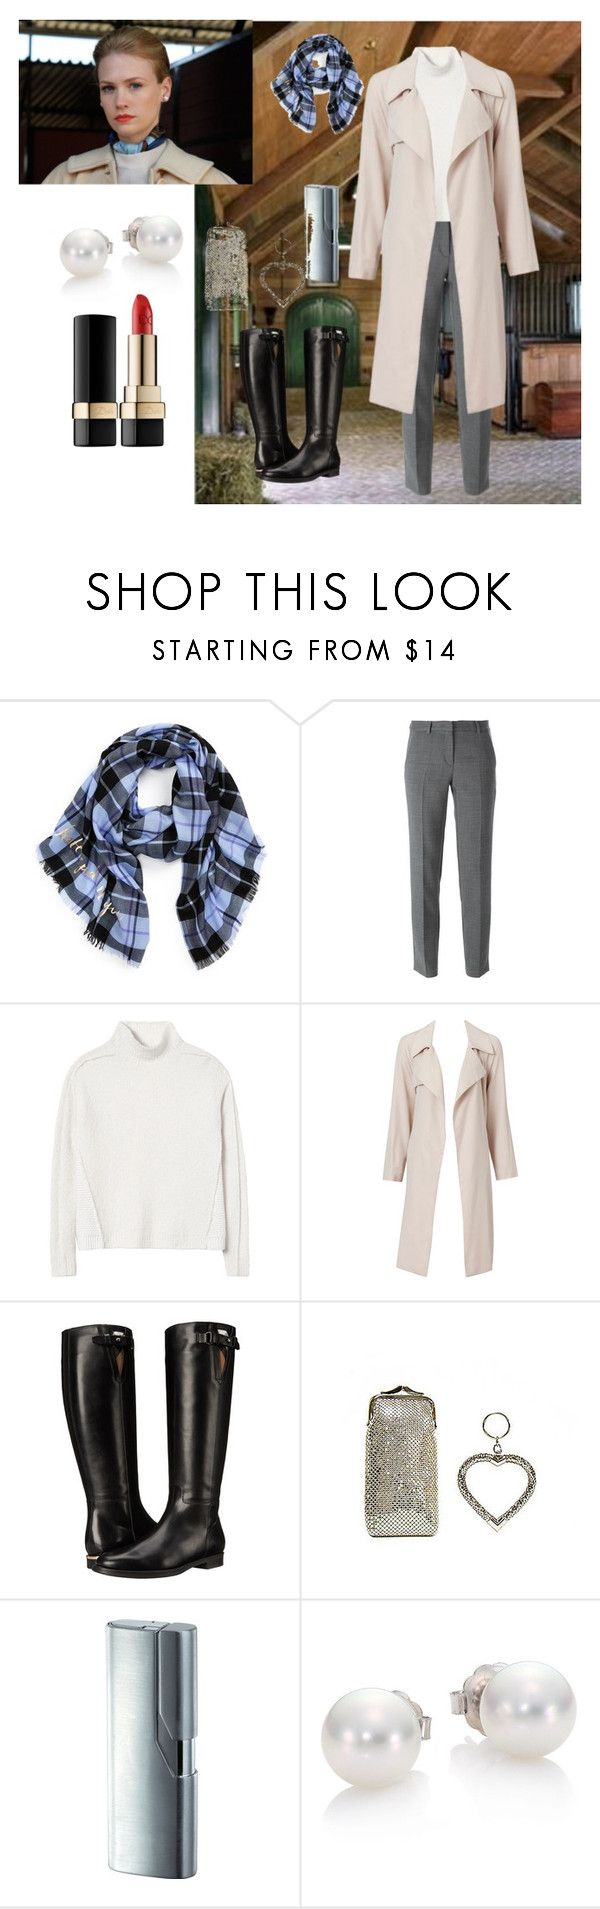 """""""Betty Draper, Equestrian.  Kudos to Janie Bryant for all her outfits."""" by dana-debanks ❤ liked on Polyvore featuring Kate Spade, DKNY, Rebecca Taylor, Burberry, Whiting & Davis, Mikimoto, Dolce&Gabbana, women's clothing, women and female"""